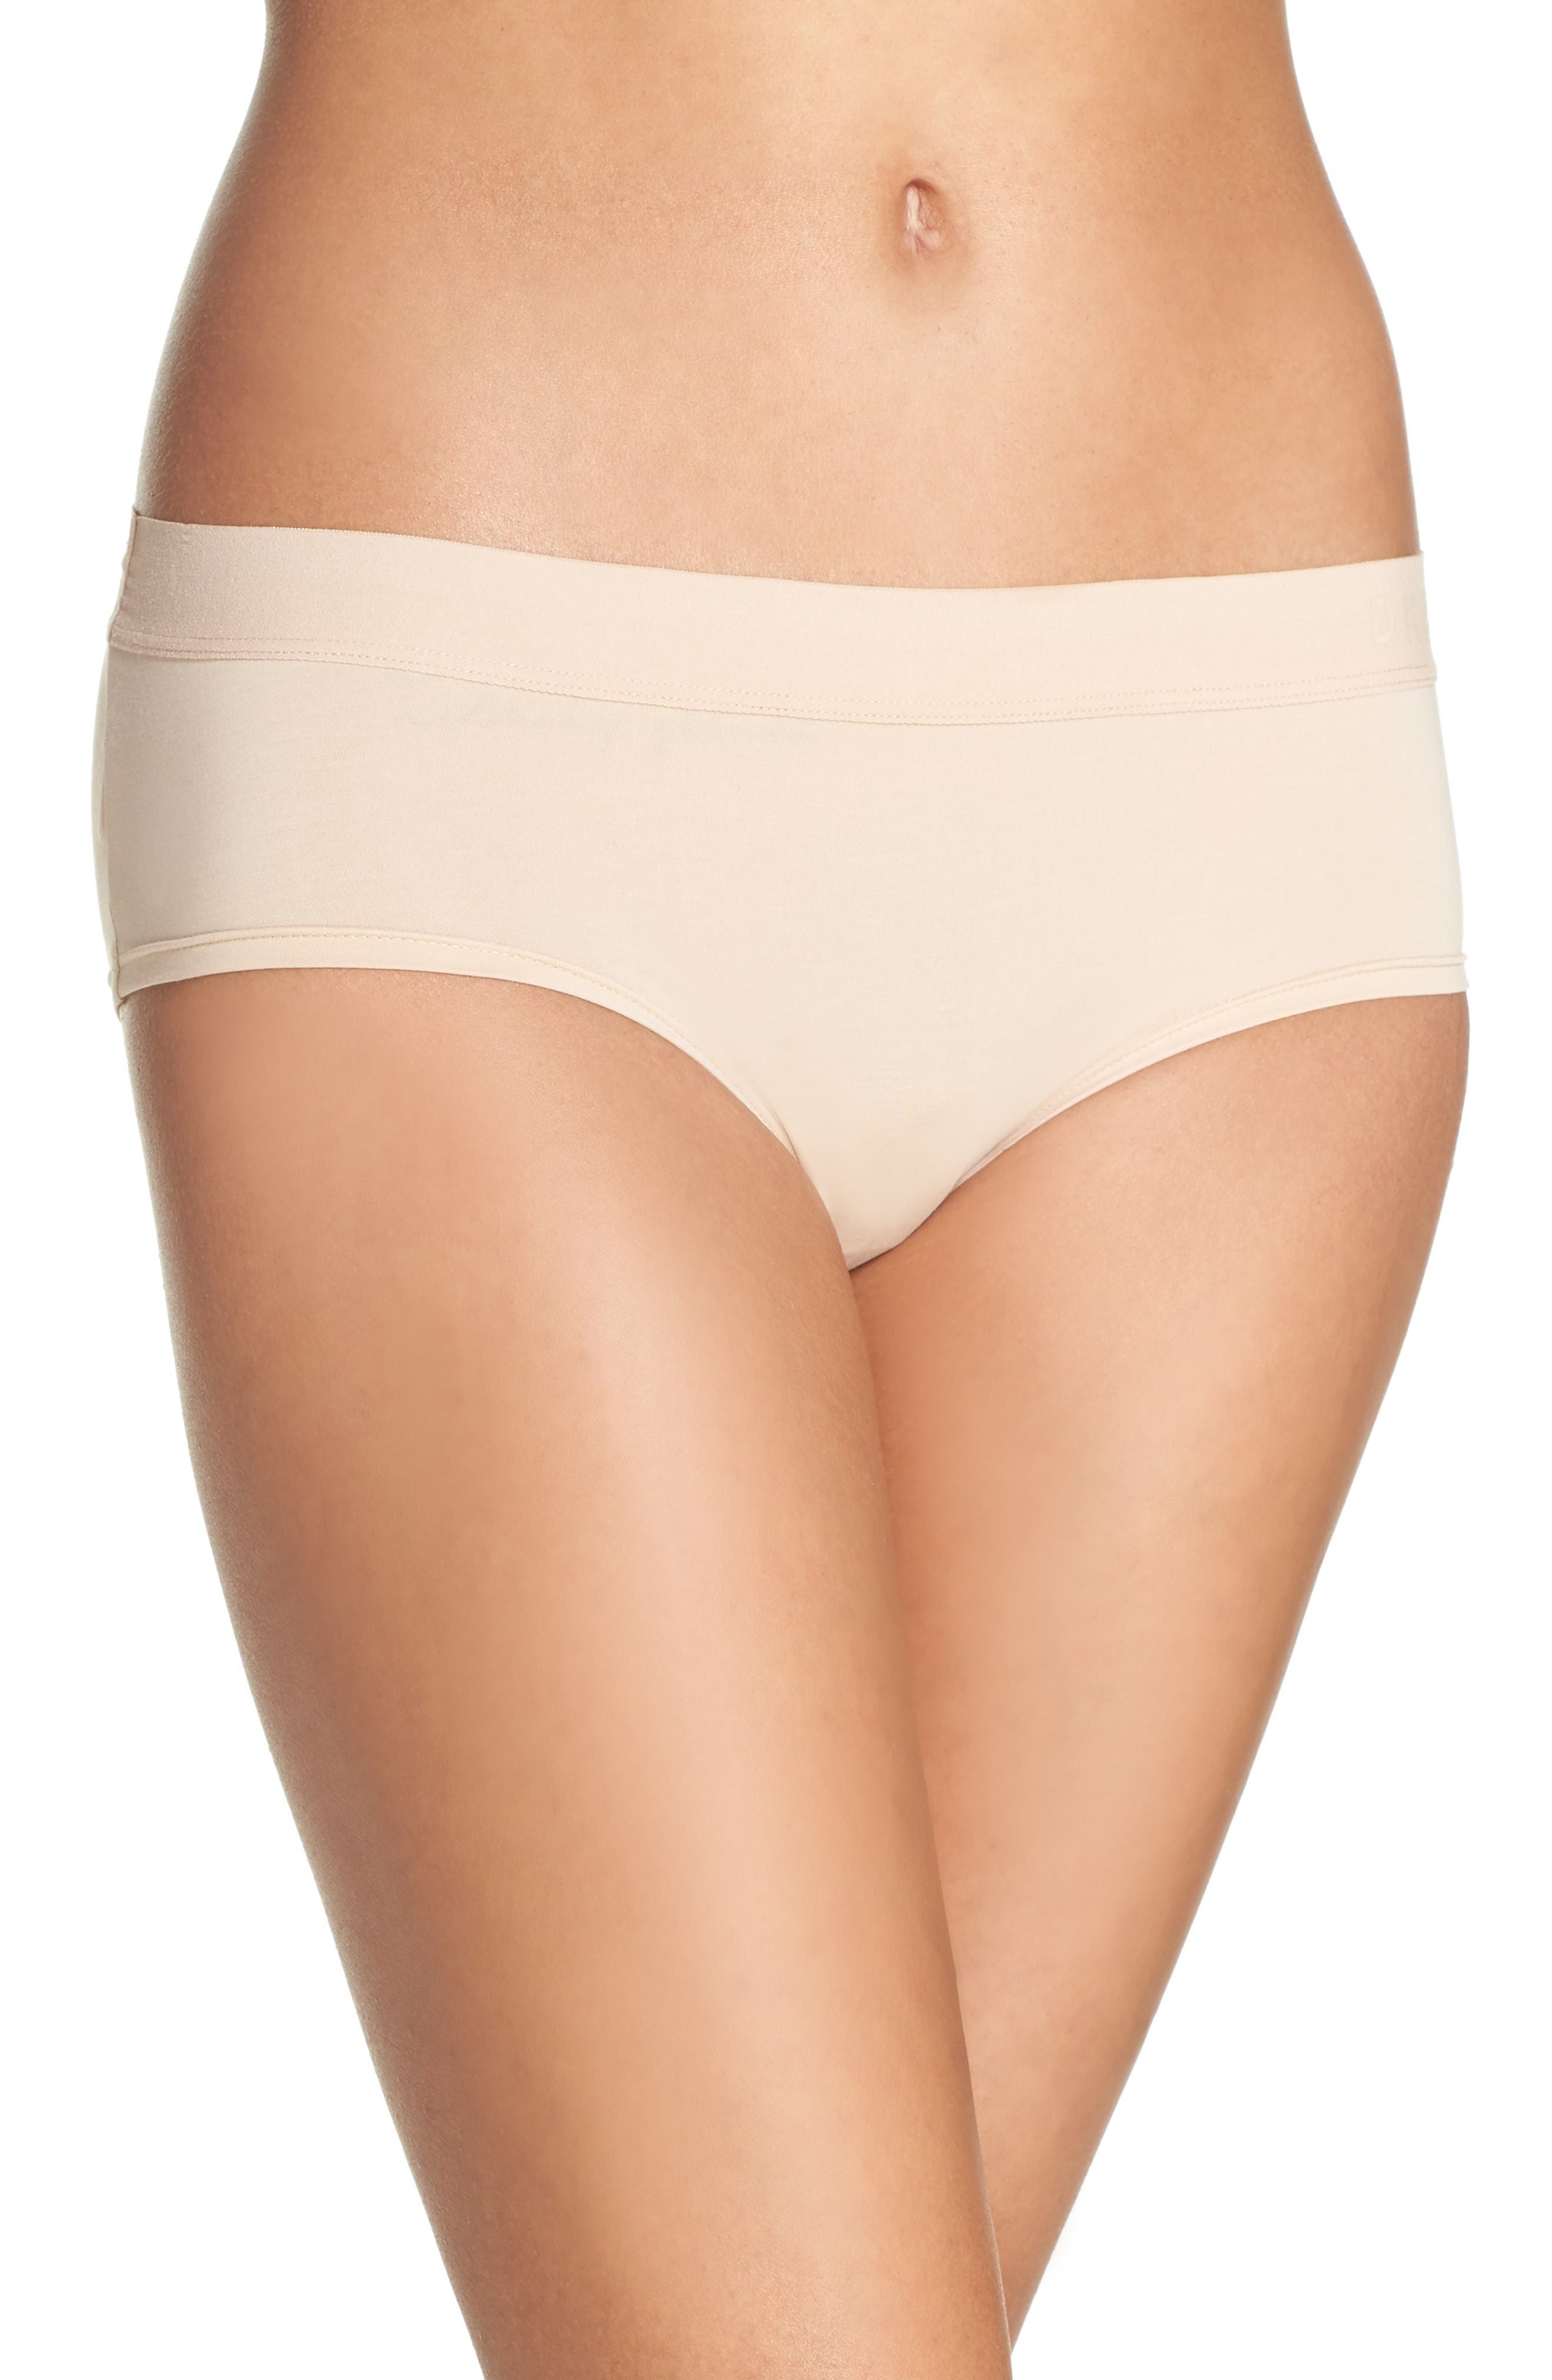 Alternate Image 1 Selected - DKNY Hipster Panties (3 for $33)